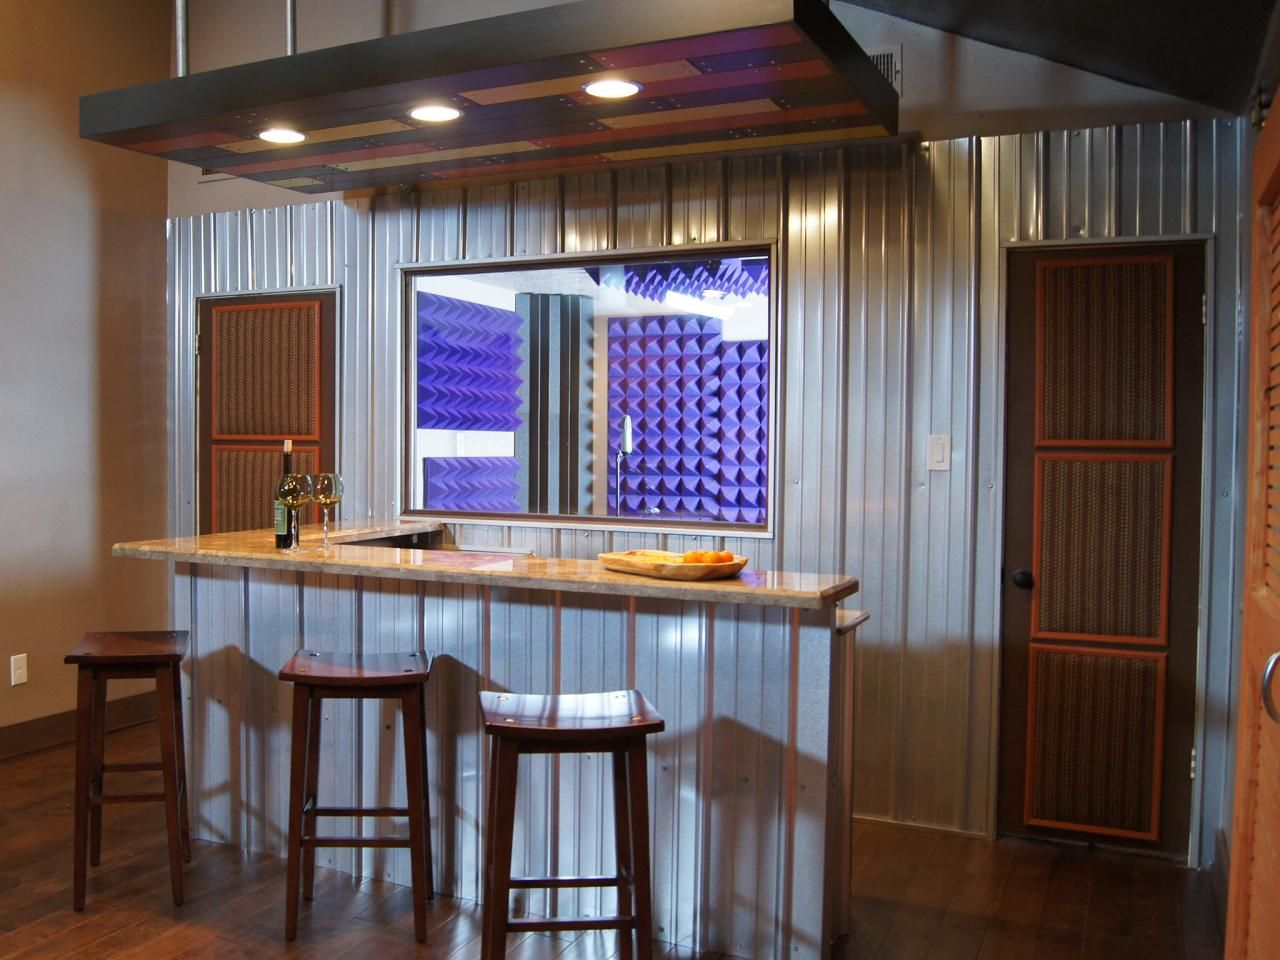 Genial Simple Basement Bar Ideas. Simple Basement Bar Ideas N